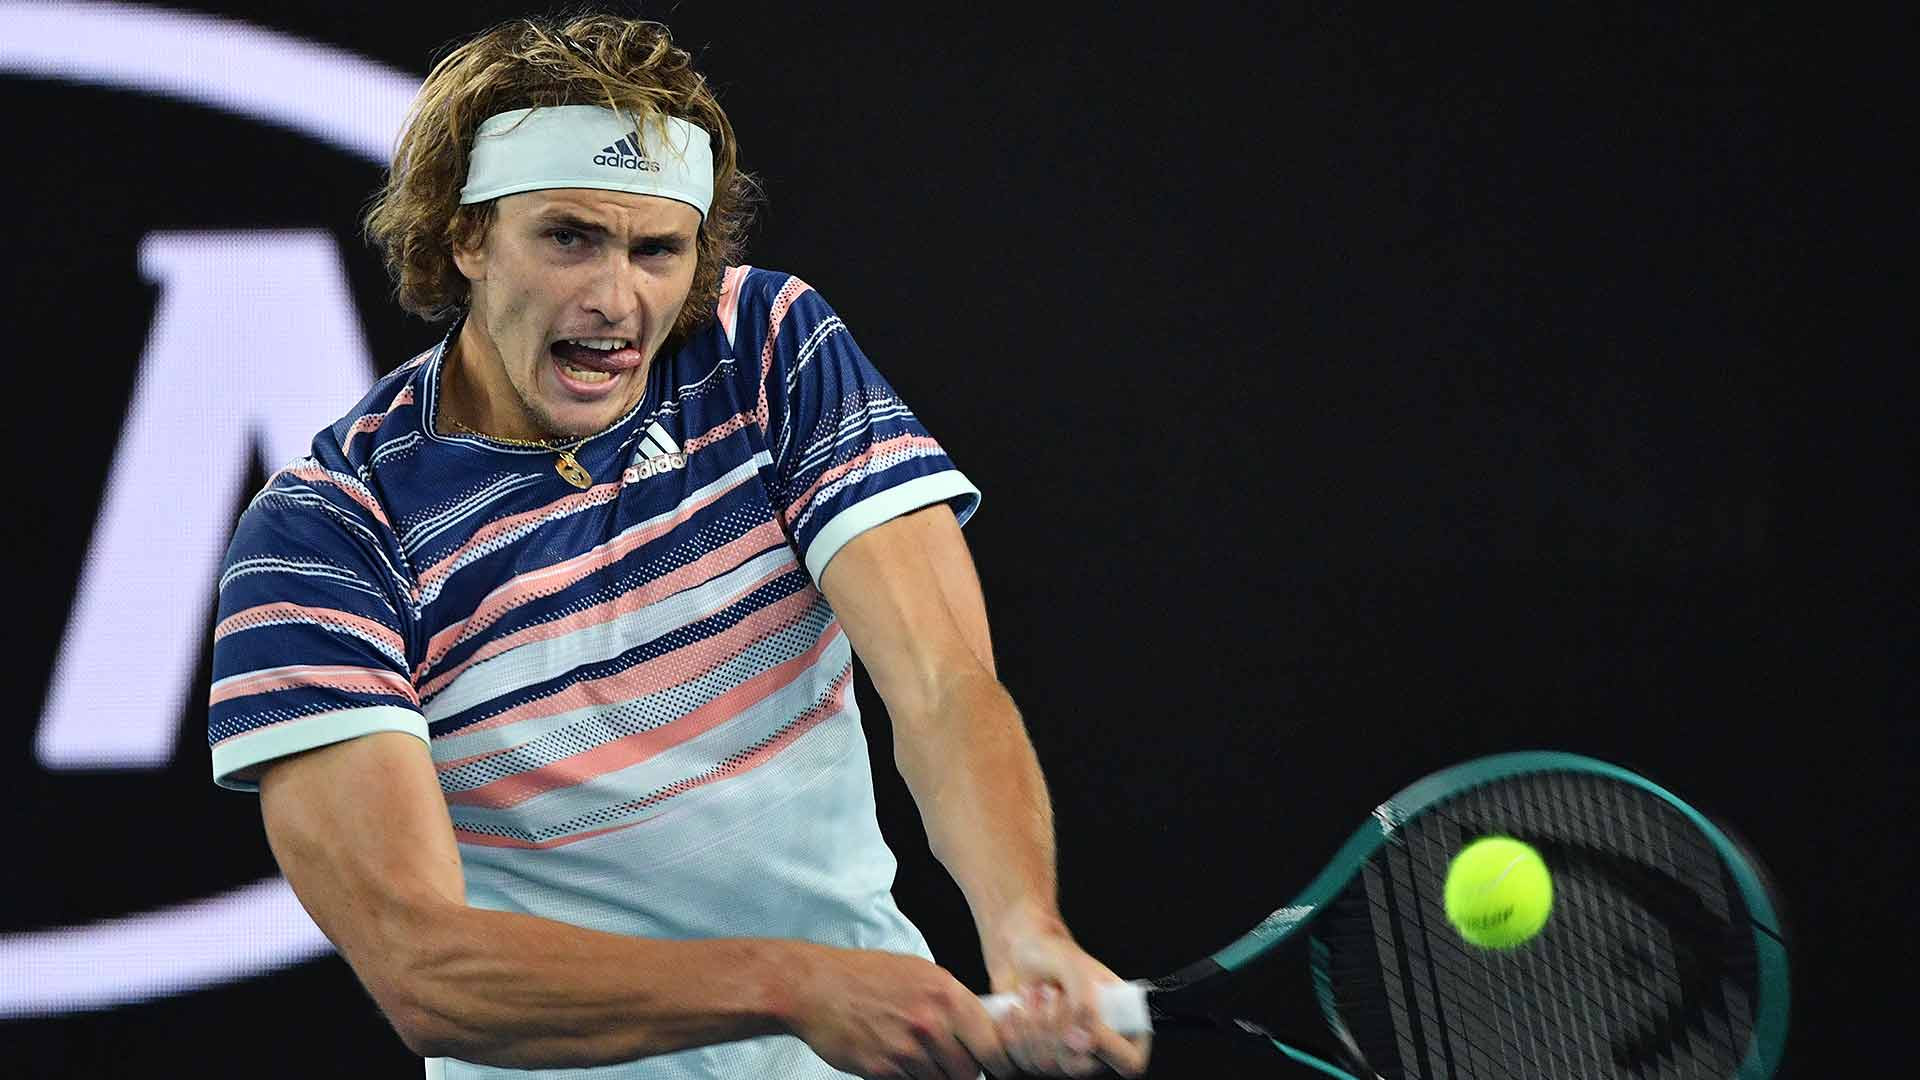 Alexander Zverev is through to the second week of the Australian Open.